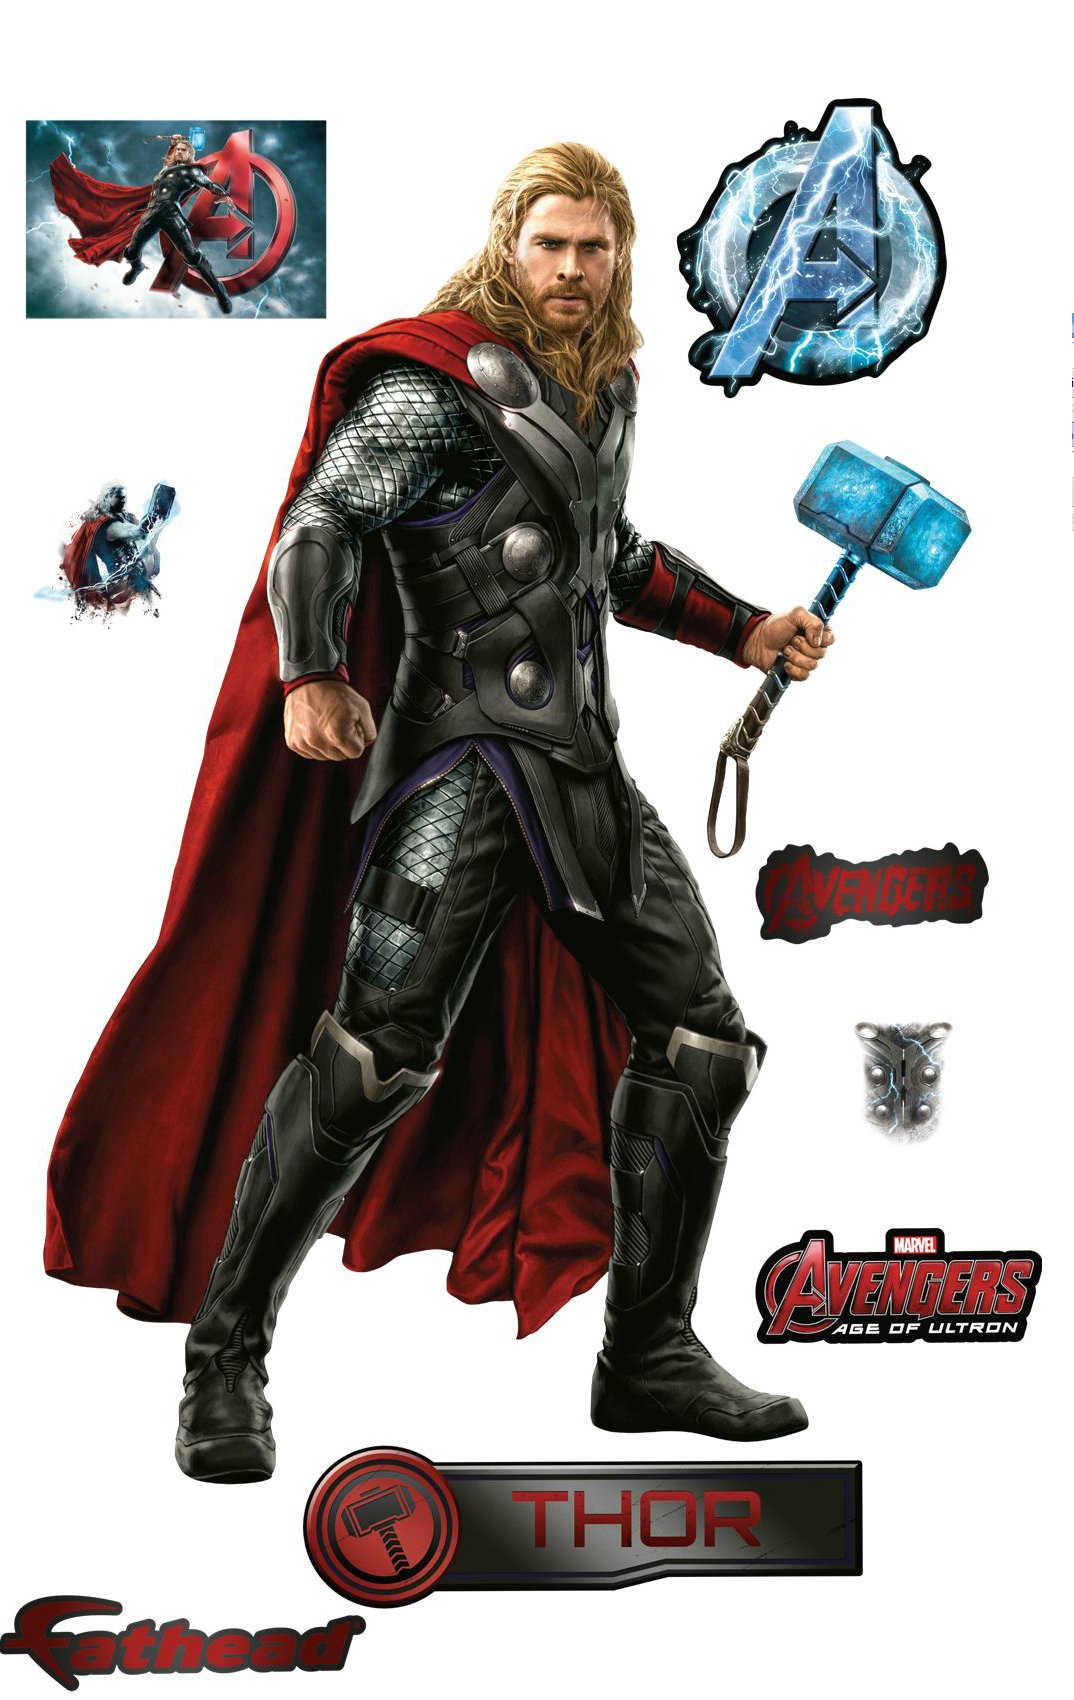 Avengers-Age-of-Ultron-Thor-Fathead.png